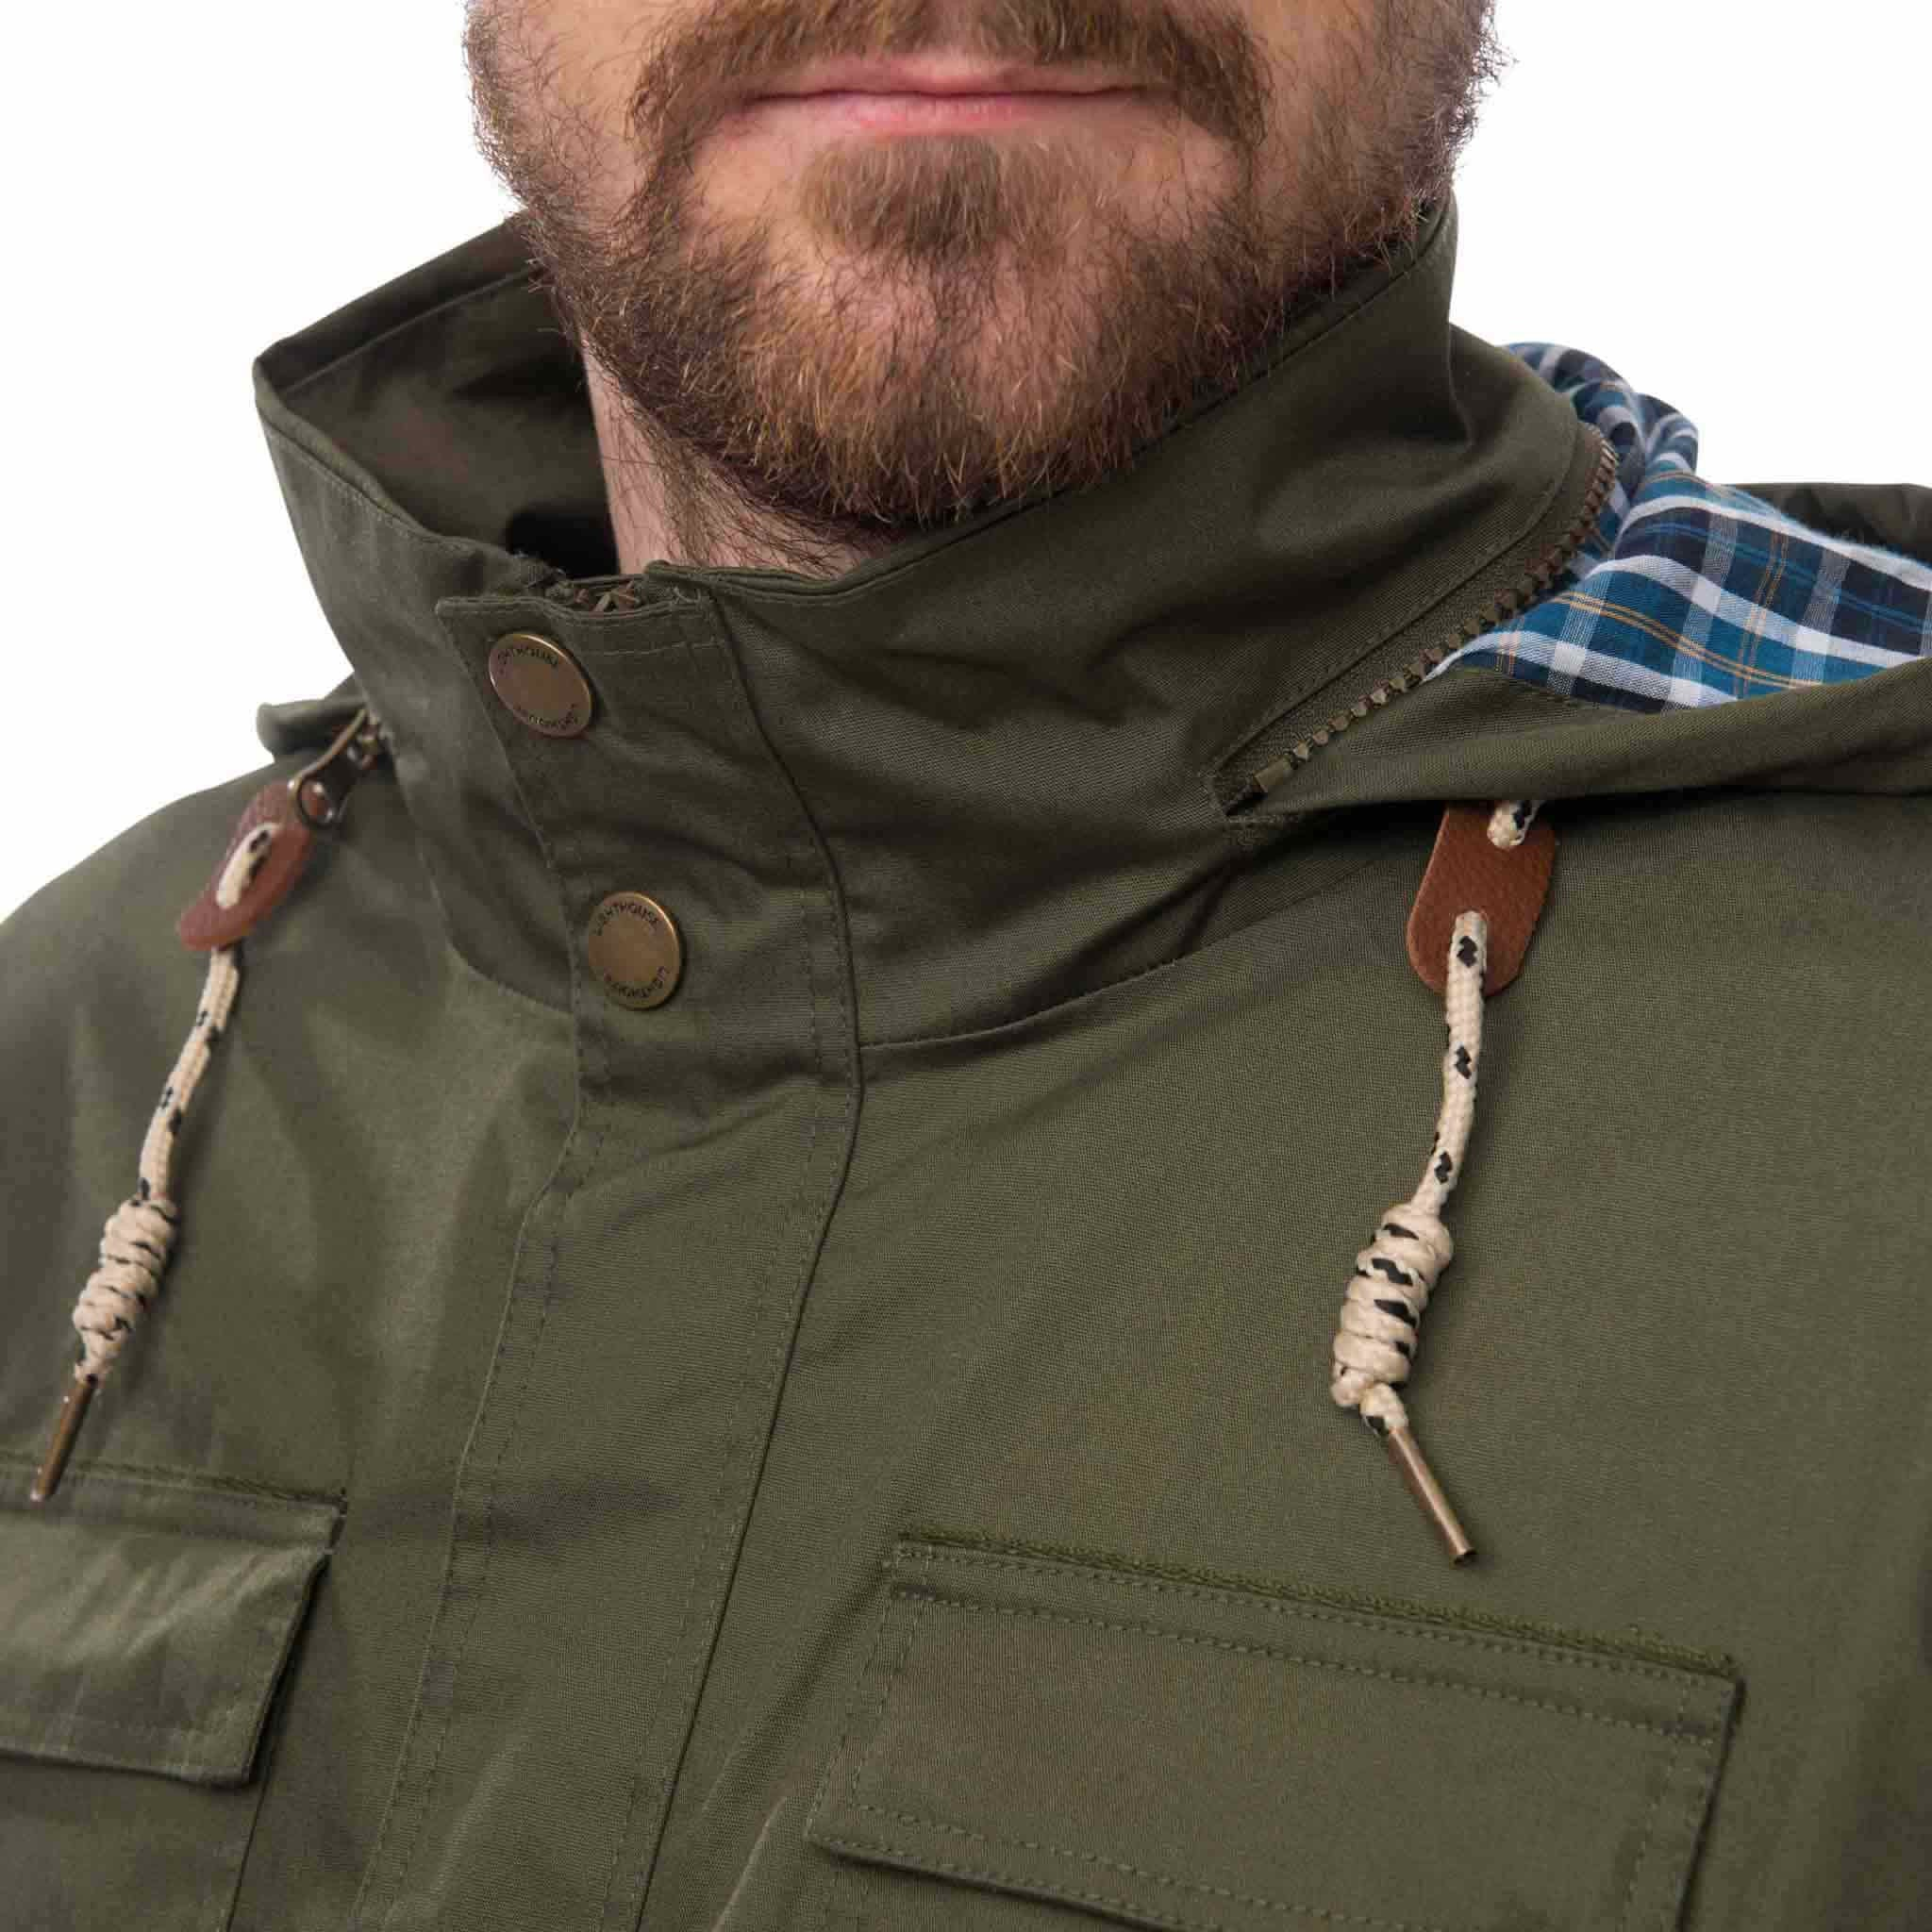 Rigger Mens Waterproof Jacket with Cotton Outer, in Olive, Modelled Detailed Front View | Lighthouse